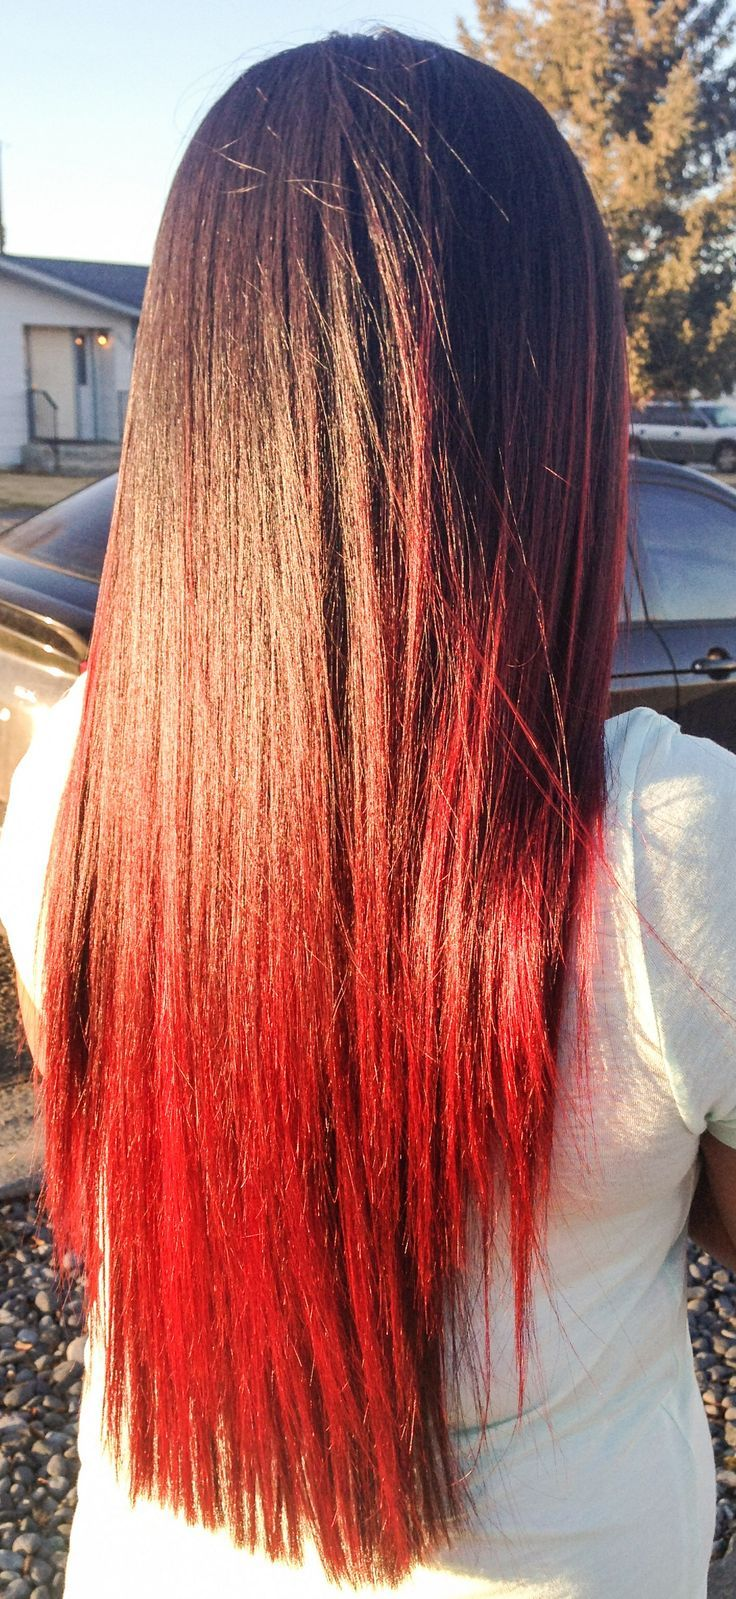 Brown Hair Red Tips Google Search Hair Pinterest Colourful